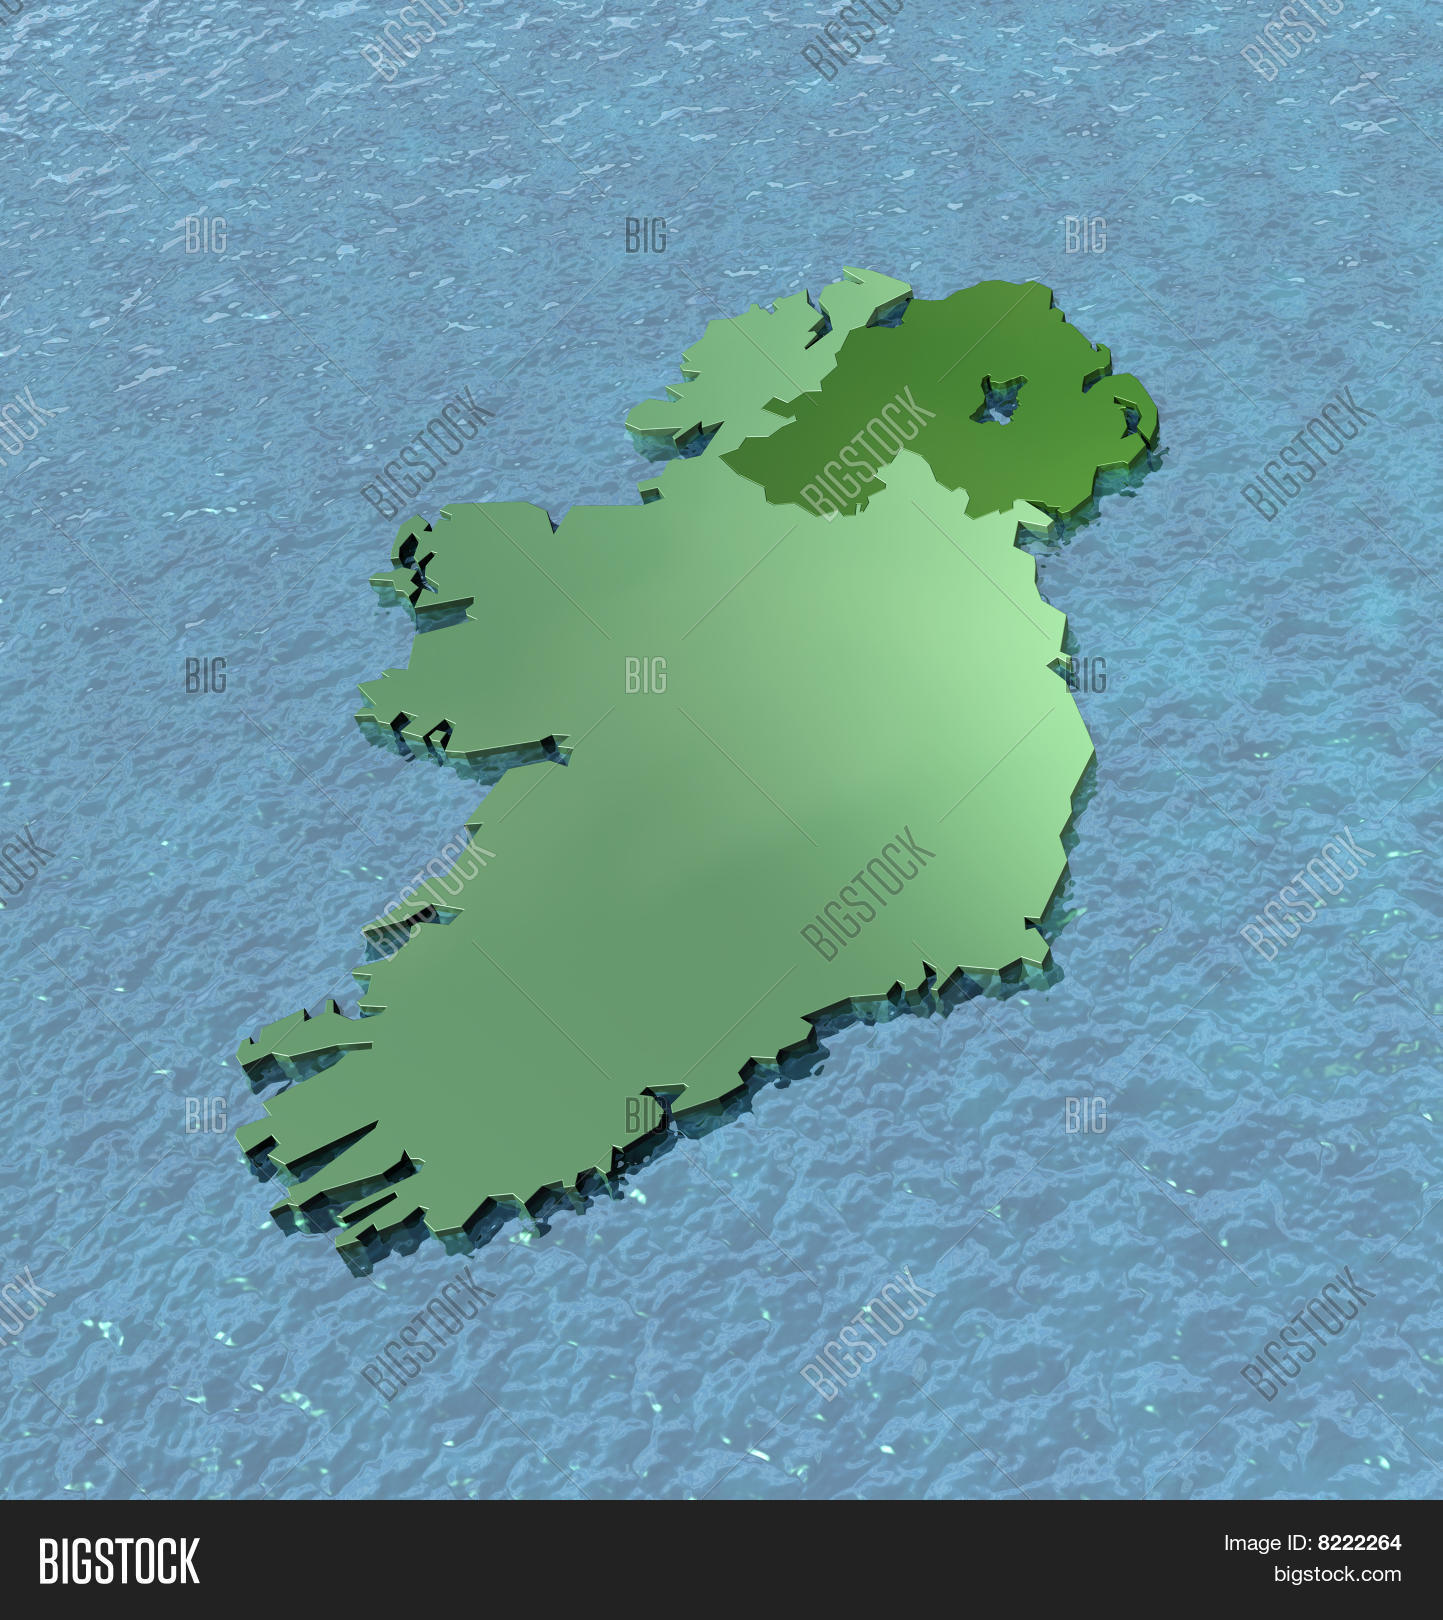 Map Of Ireland 3d.3d Map Ireland On Sea Image Photo Free Trial Bigstock